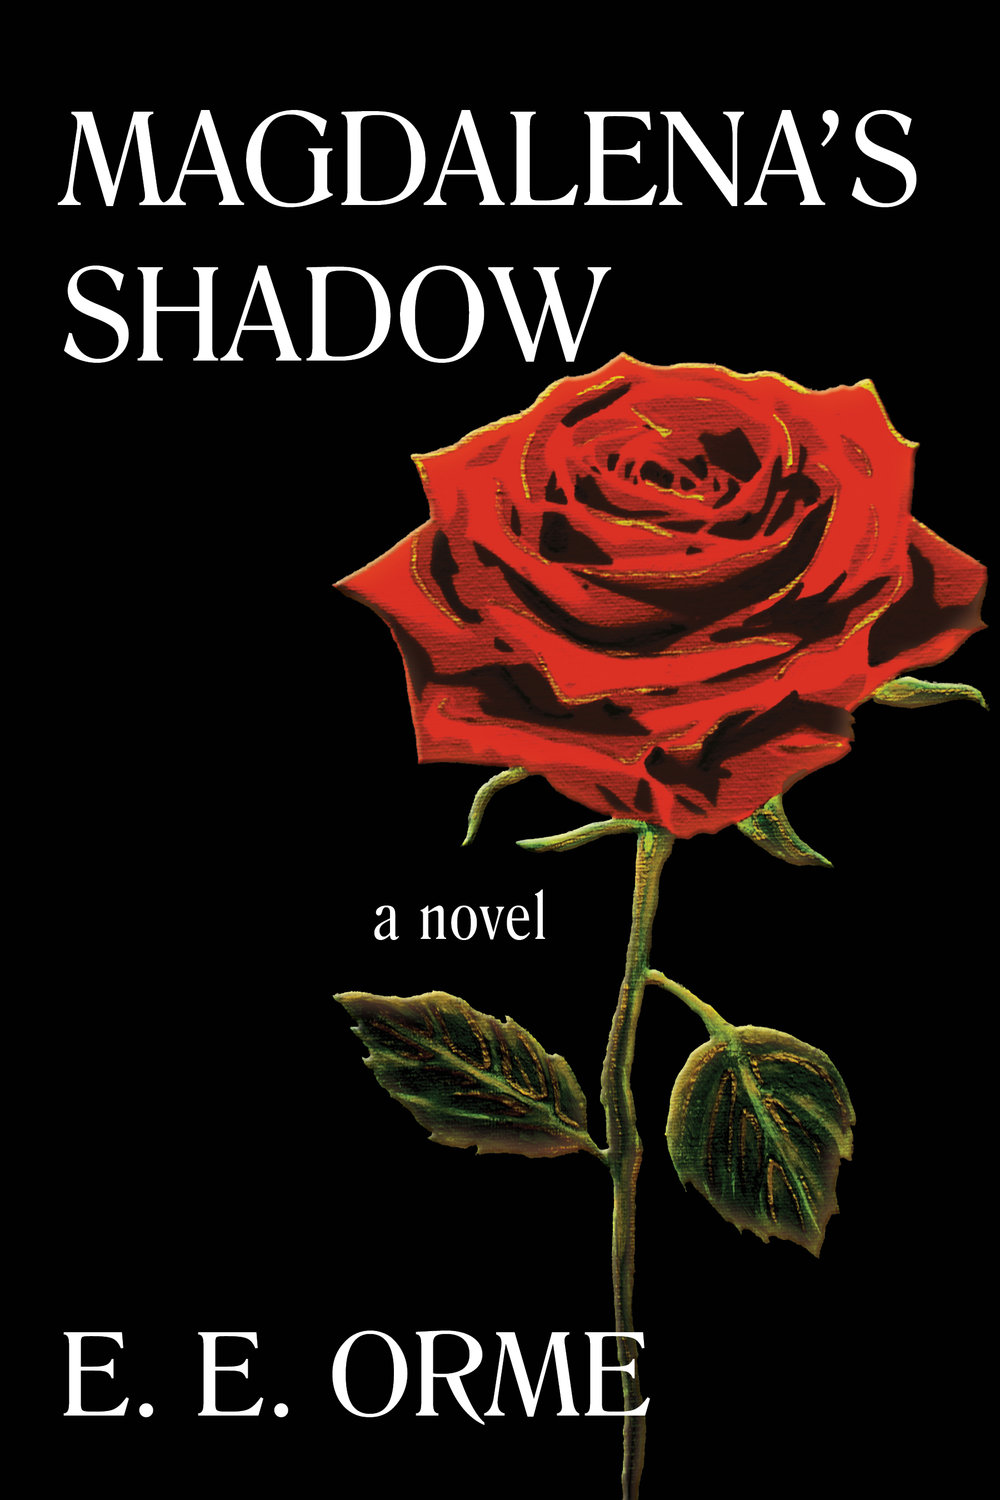 Magdalena's Shadow by E. E. Orme